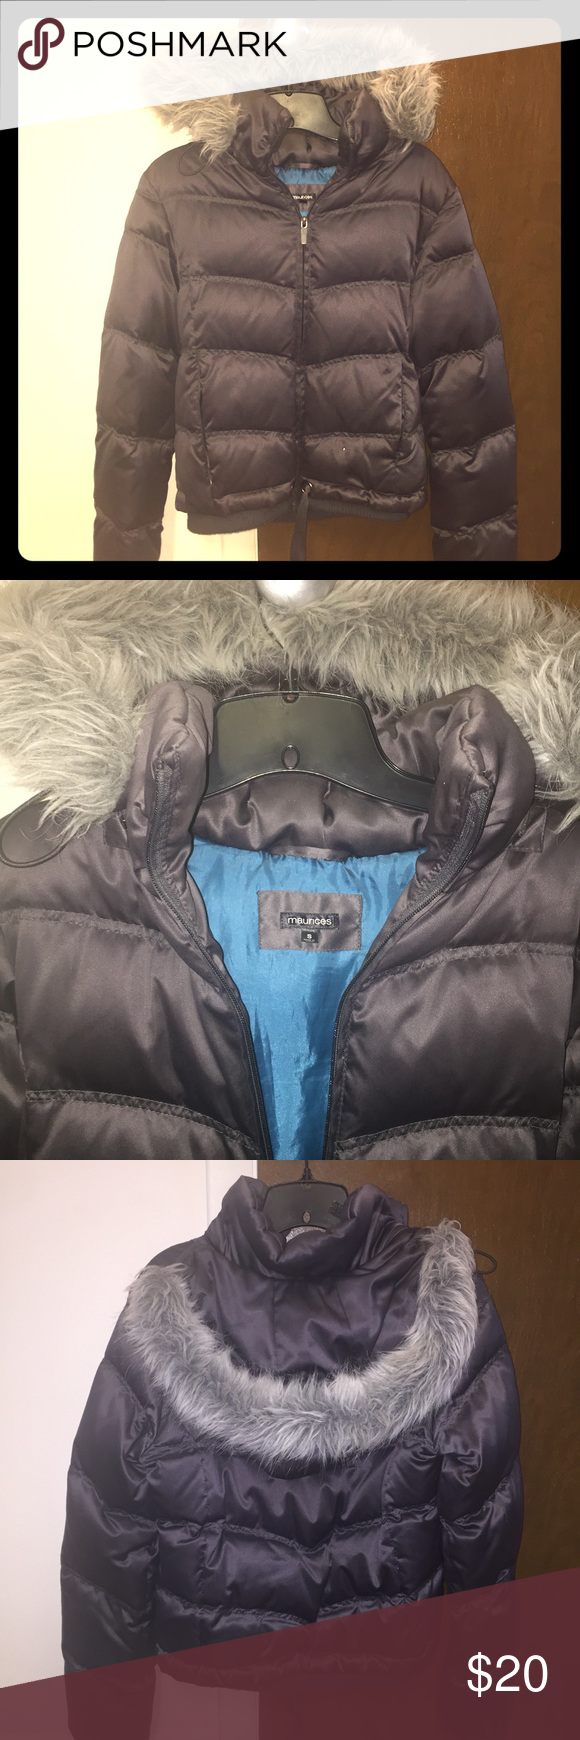 Maurice's Coat W/ Fur-Lined Hood Dark gray puff winter coat with fitted waistband and drawstrings, fur-lined removable hood, two side zip pockets on outside on hidden pocket on inside. This coat is in excellent condition! The body is 100% polyester. Maurices Jackets & Coats Puffers